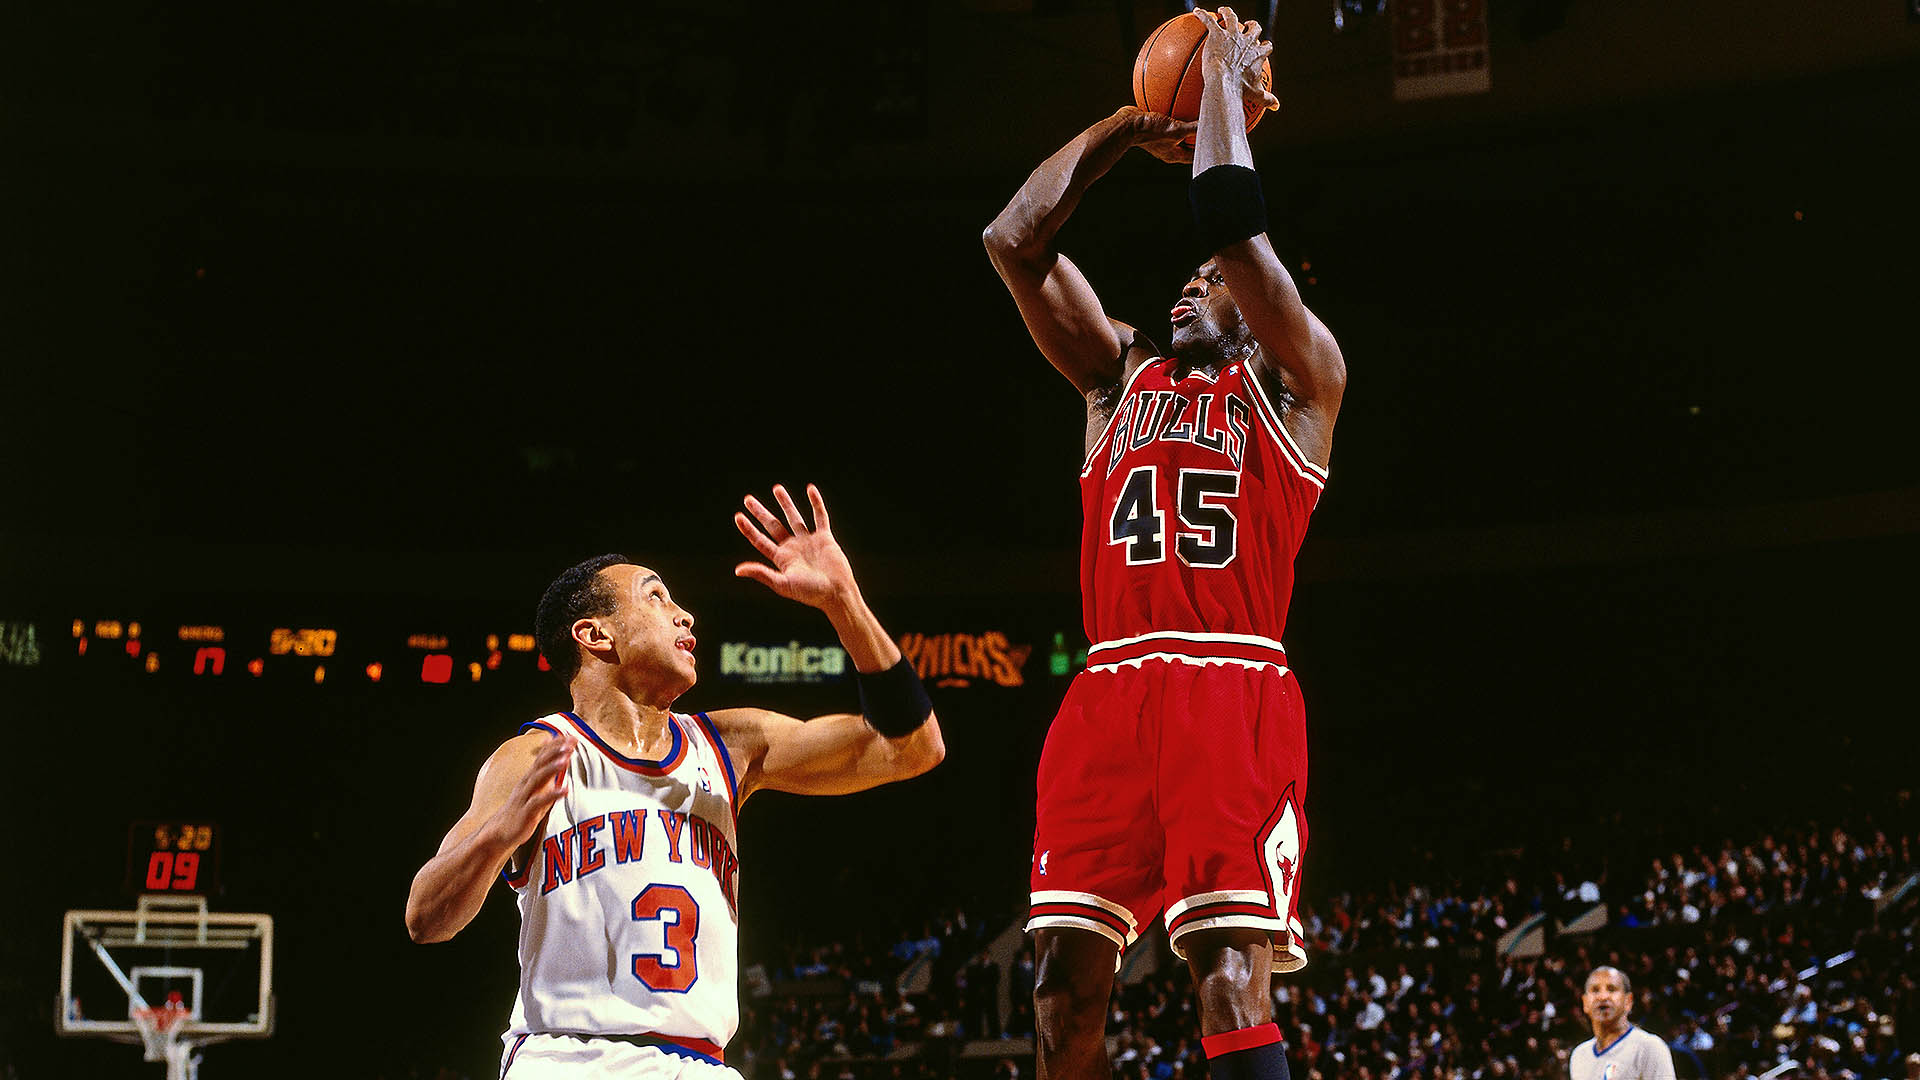 Top Moments: Double-nickel game proves Michael Jordan is officially back